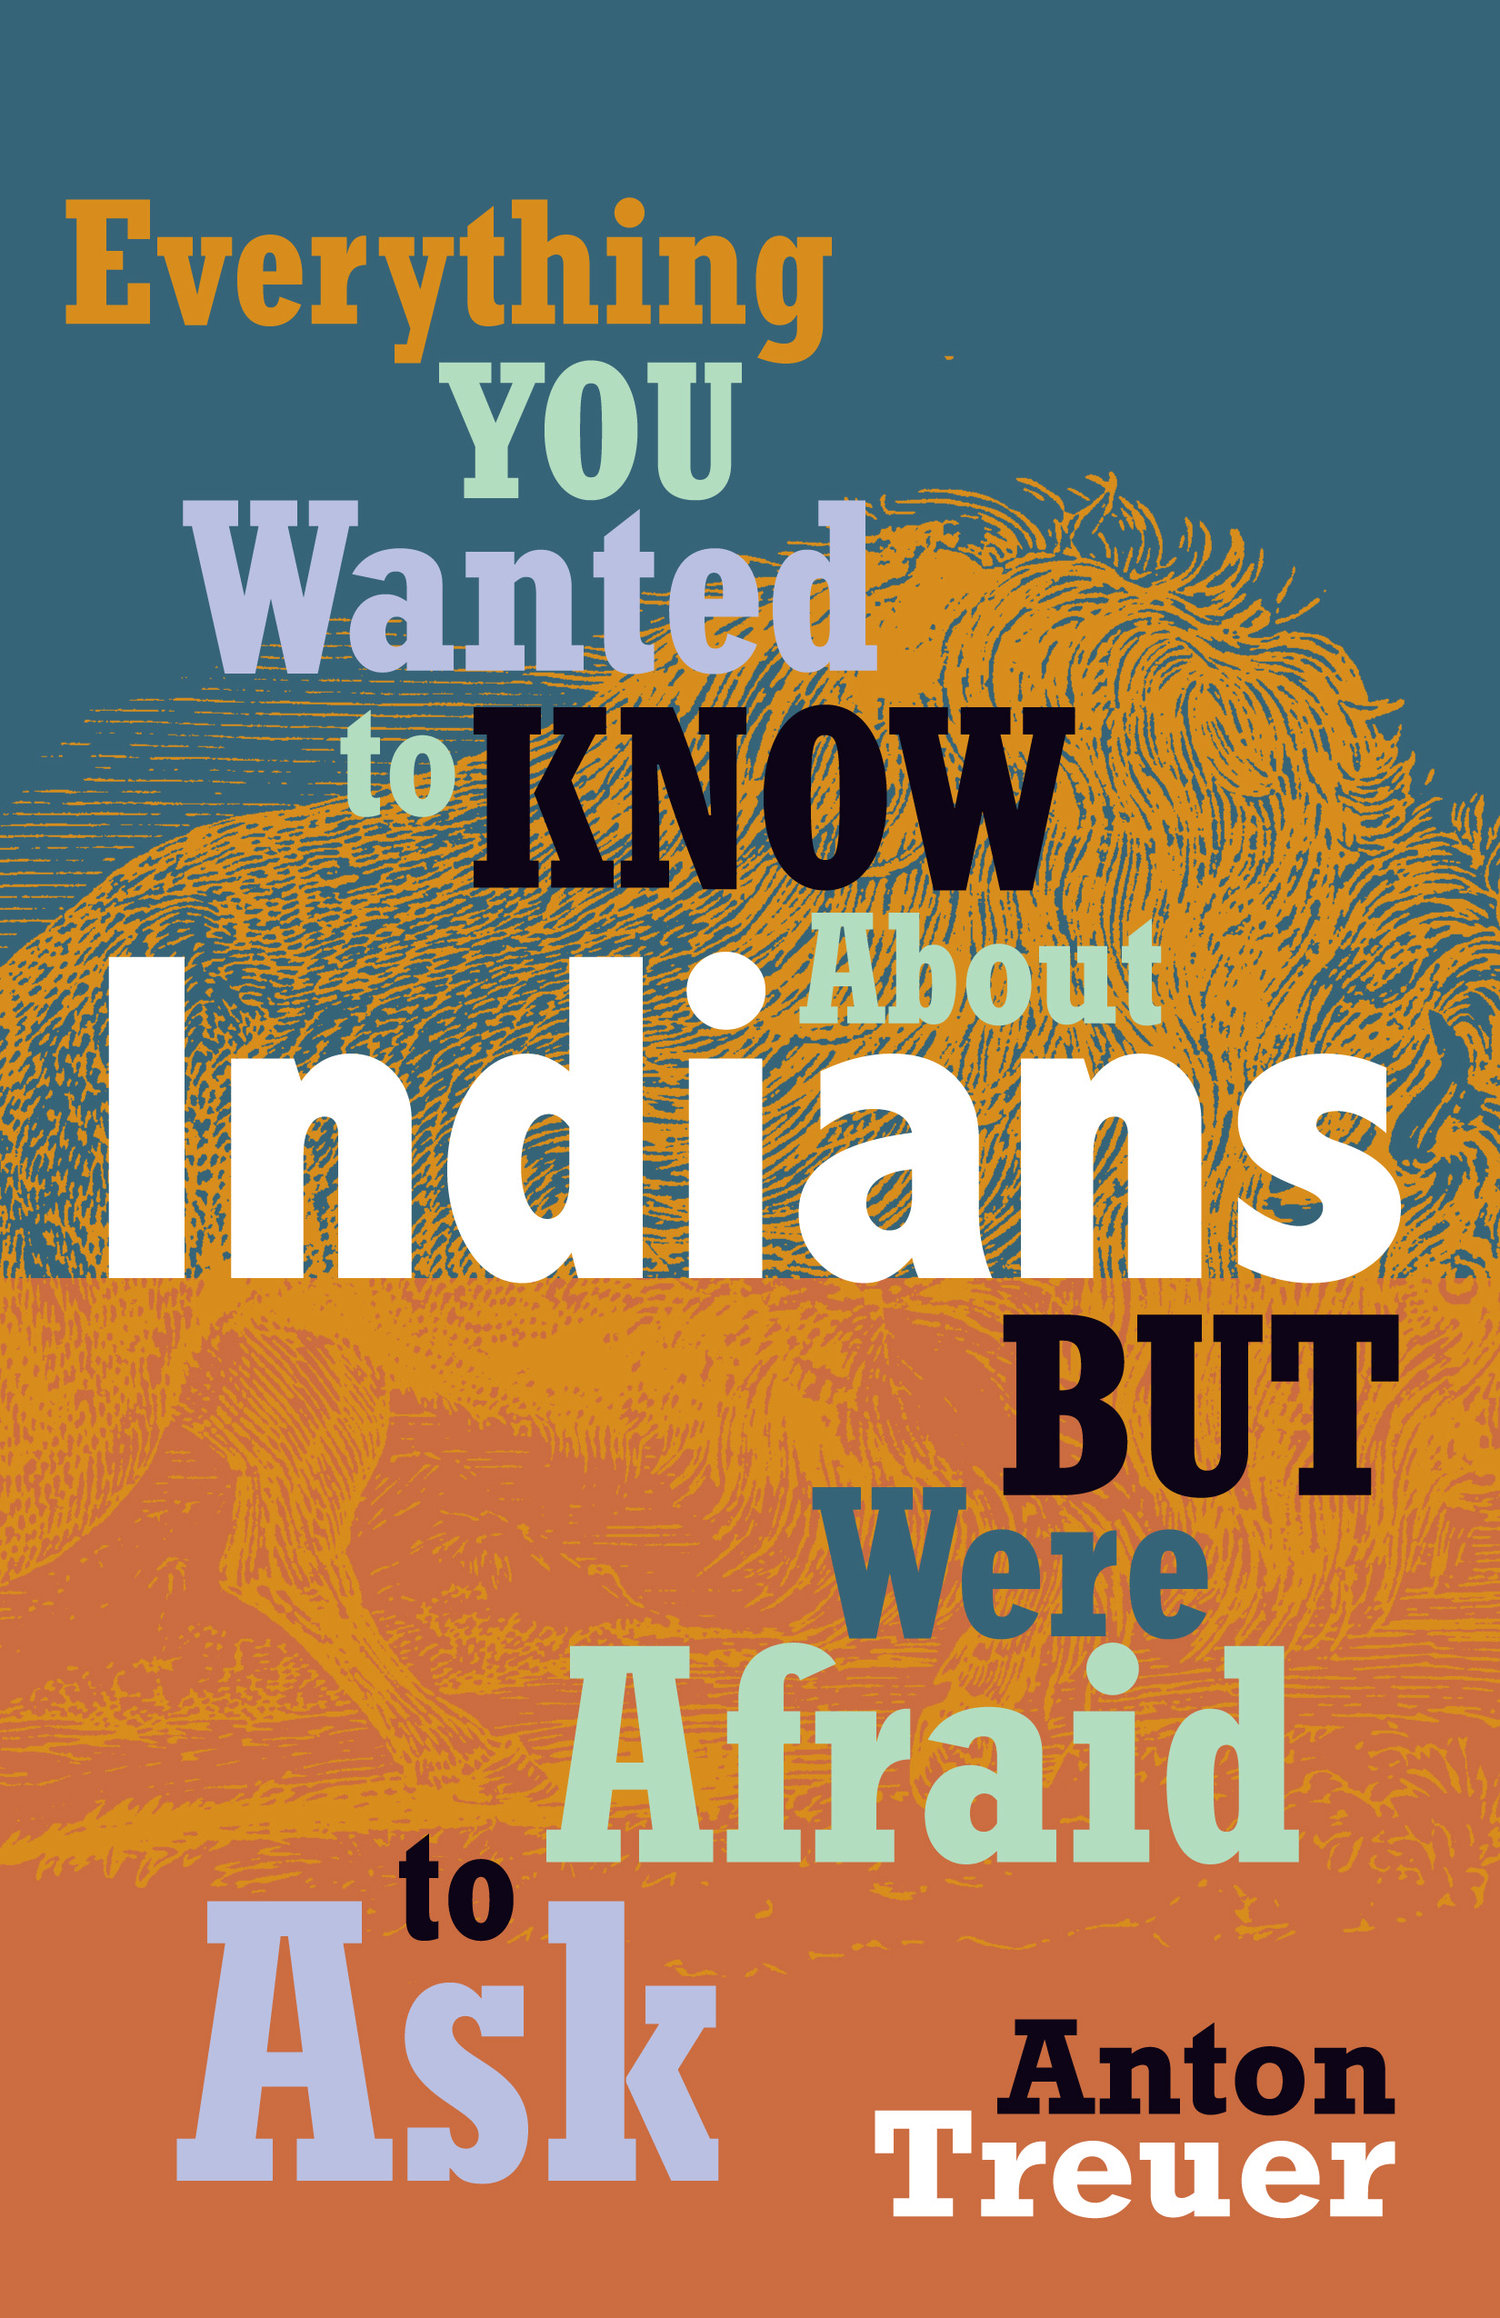 Books By Native Authors - Everything You Wanted To Know About Indians But Were Afraid To Ask by Anton Treuer